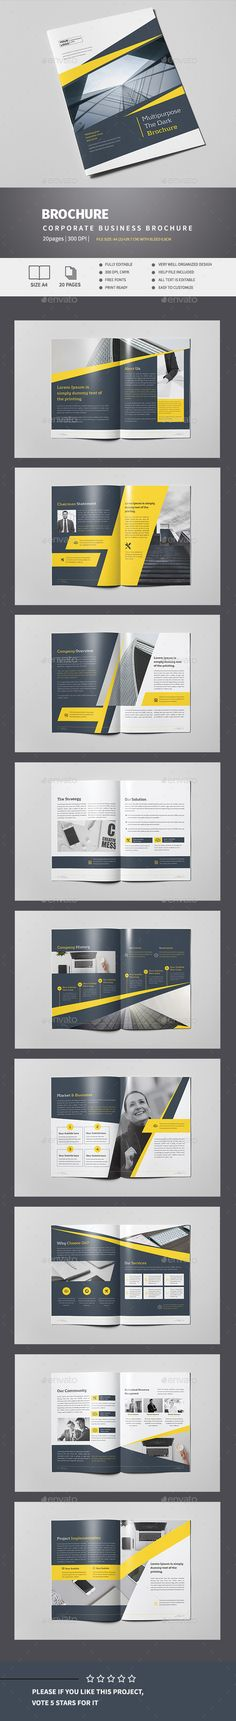 Clean Business Brochure Template InDesign INDD. Download here: http://graphicriver.net/item/clean-business-brochure/15235385?ref=ksioks